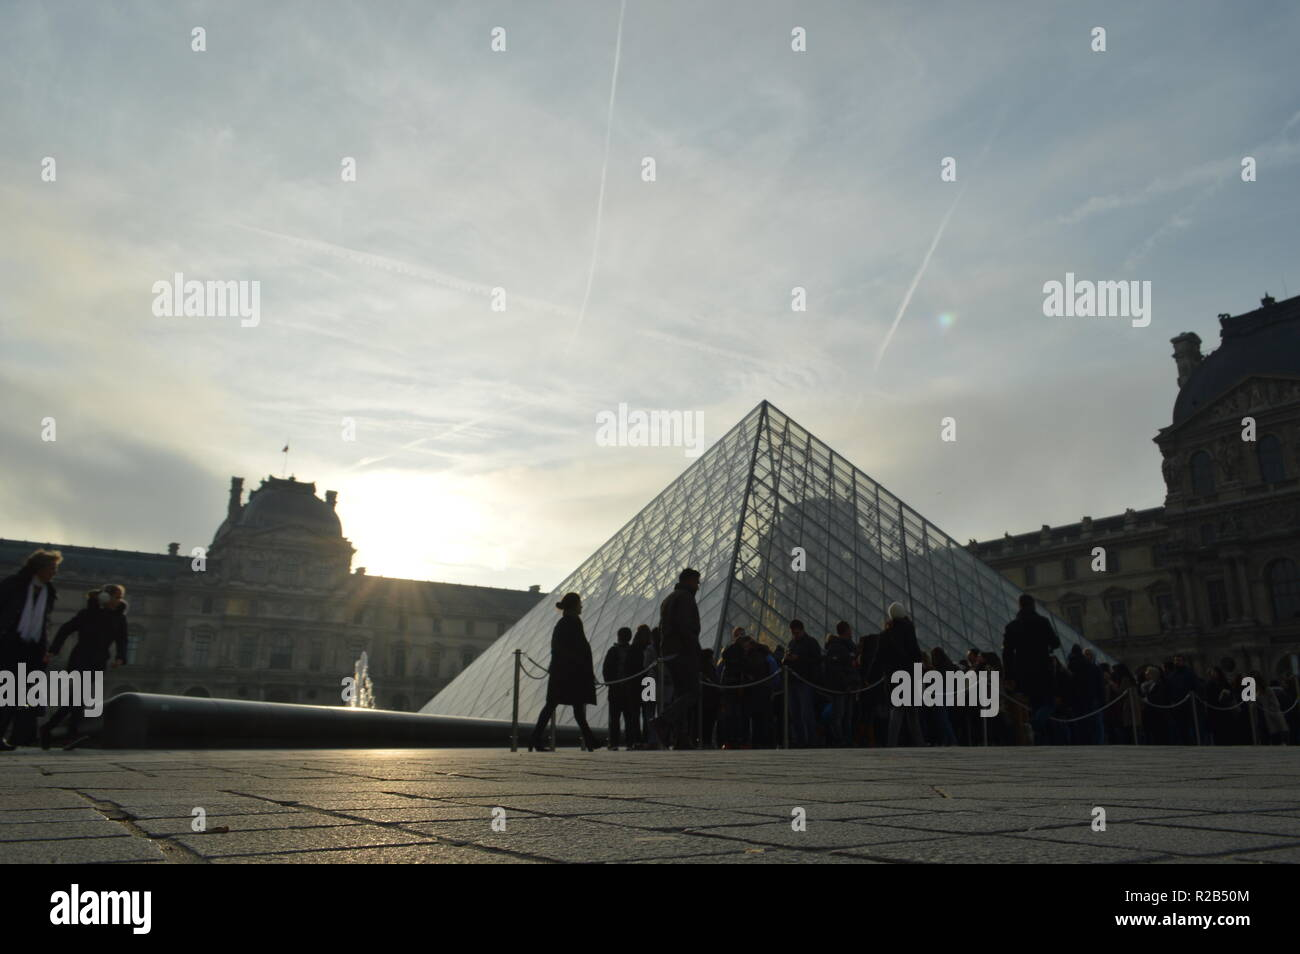 Shoot of Louvre Pyramid on early morning - Stock Image